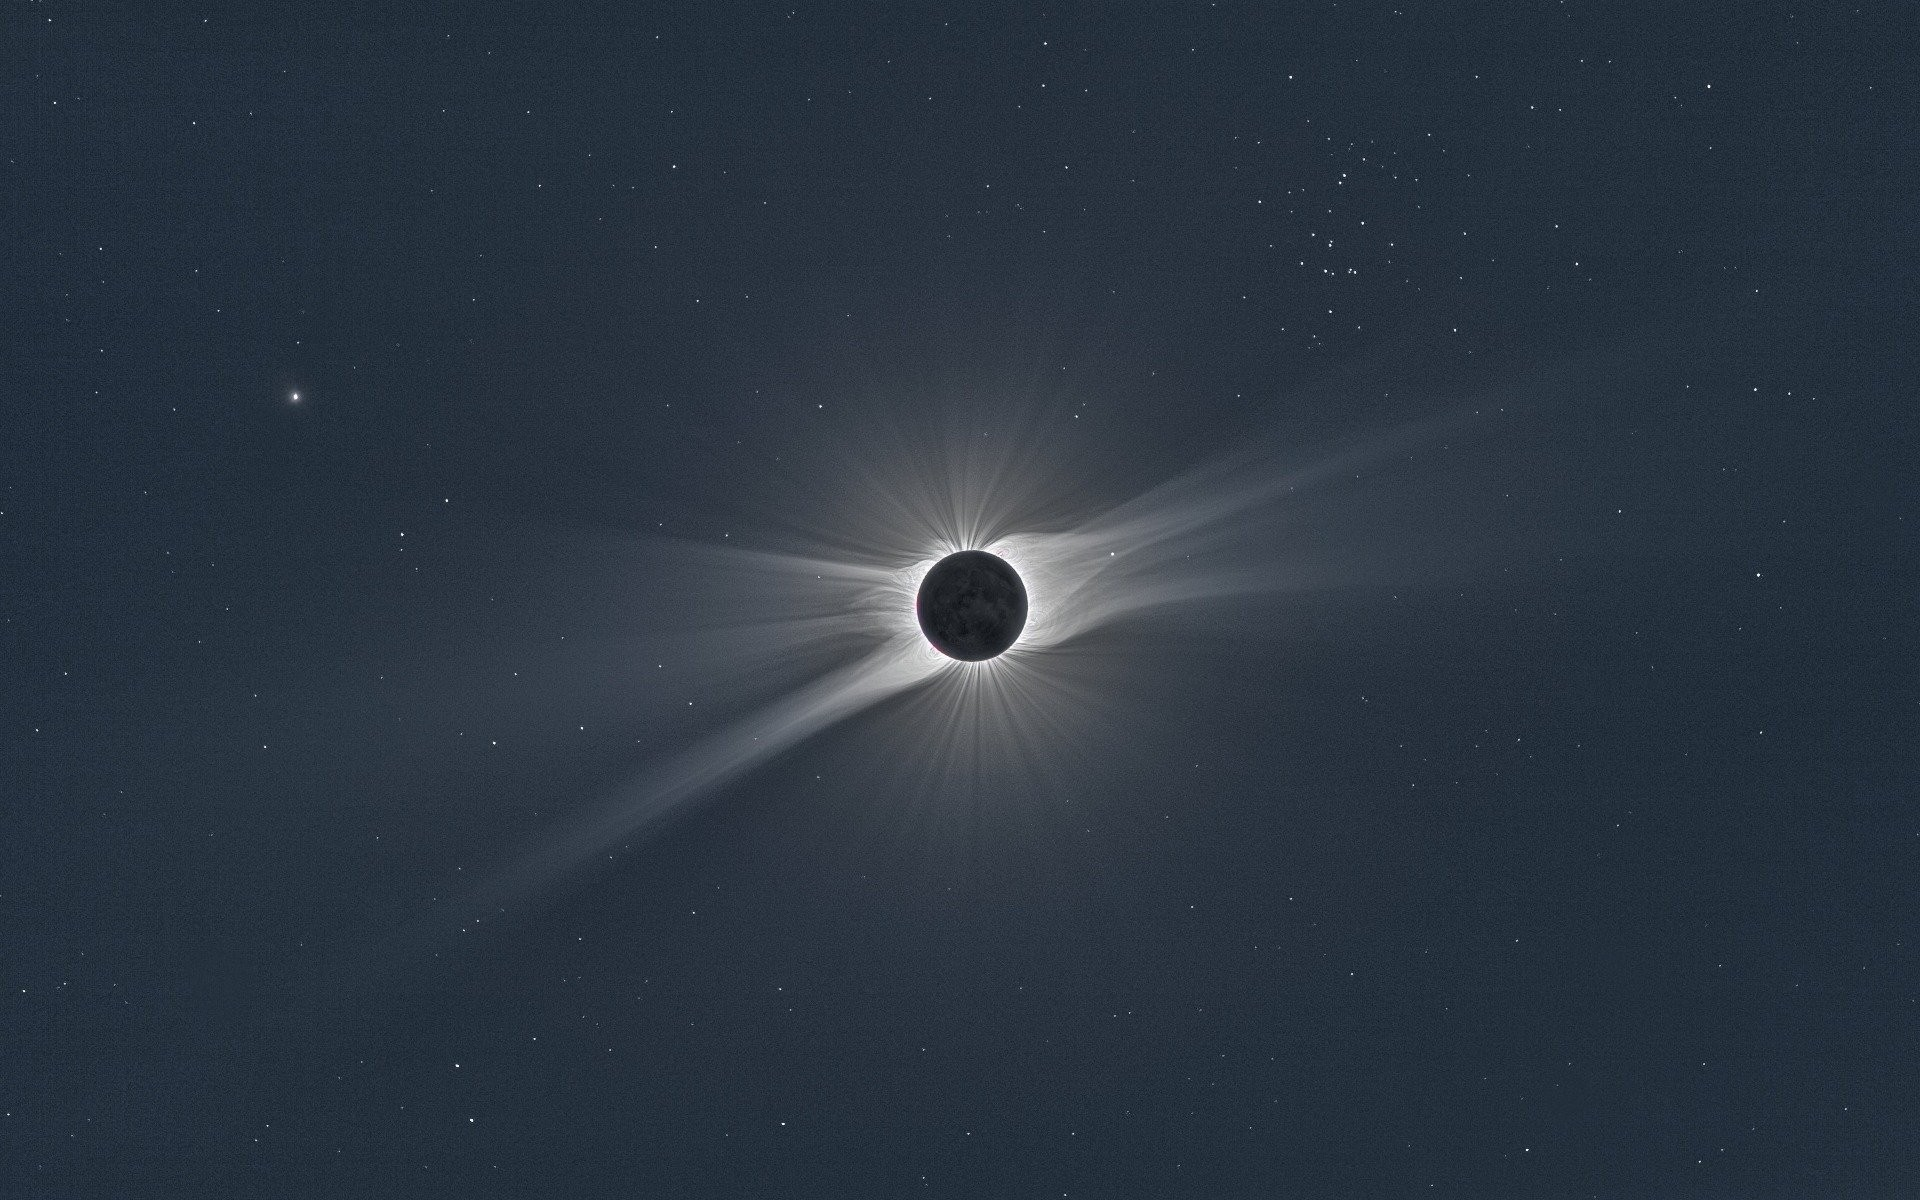 Eclipse-Space-Outer-Nature-Hd-1080p-Widescreen-wallpaper-wpc5804504